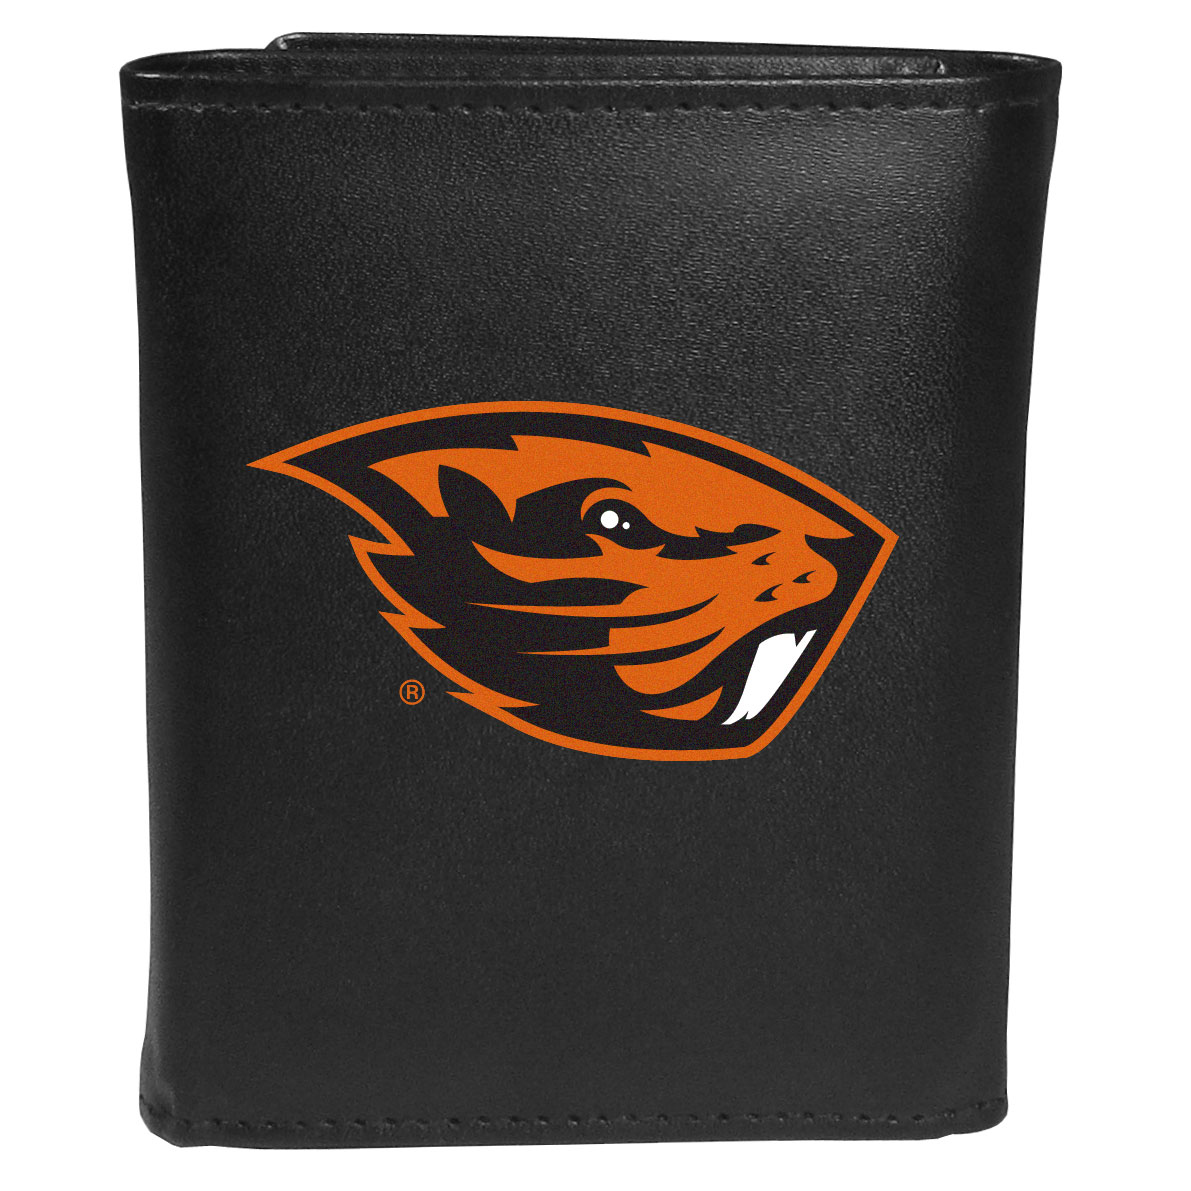 Oregon St. Beavers Leather Tri-fold Wallet, Large Logo - Our classic fine leather tri-fold wallet is meticulously crafted with genuine leather that will age beautifully so you will have a quality wallet for years to come. This is fan apparel at its finest. The wallet is packed with organizational  features; lots of credit card slots, large billfold pocket, and a window ID slot. The front of the wallet features an extra large Oregon St. Beavers printed logo.